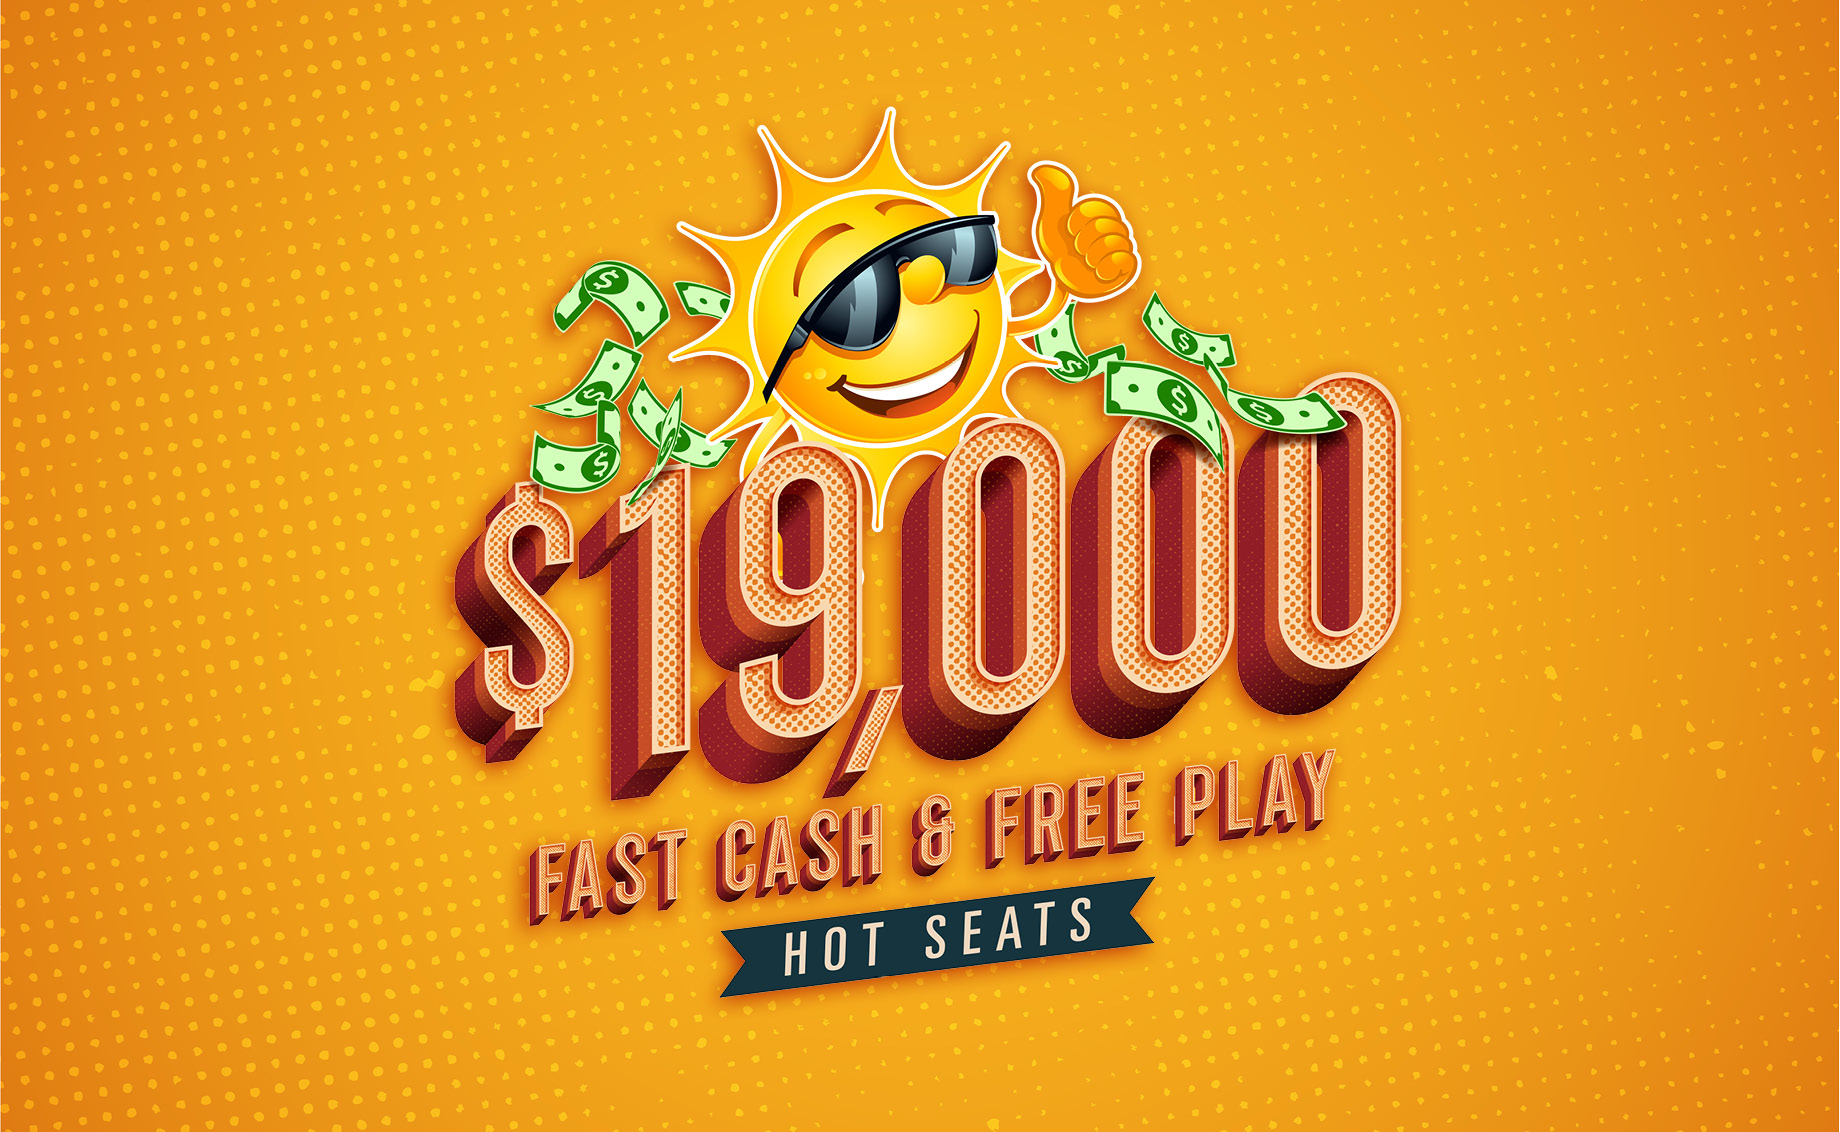 $19,000 Fast Cash and Free Play Hot Seats